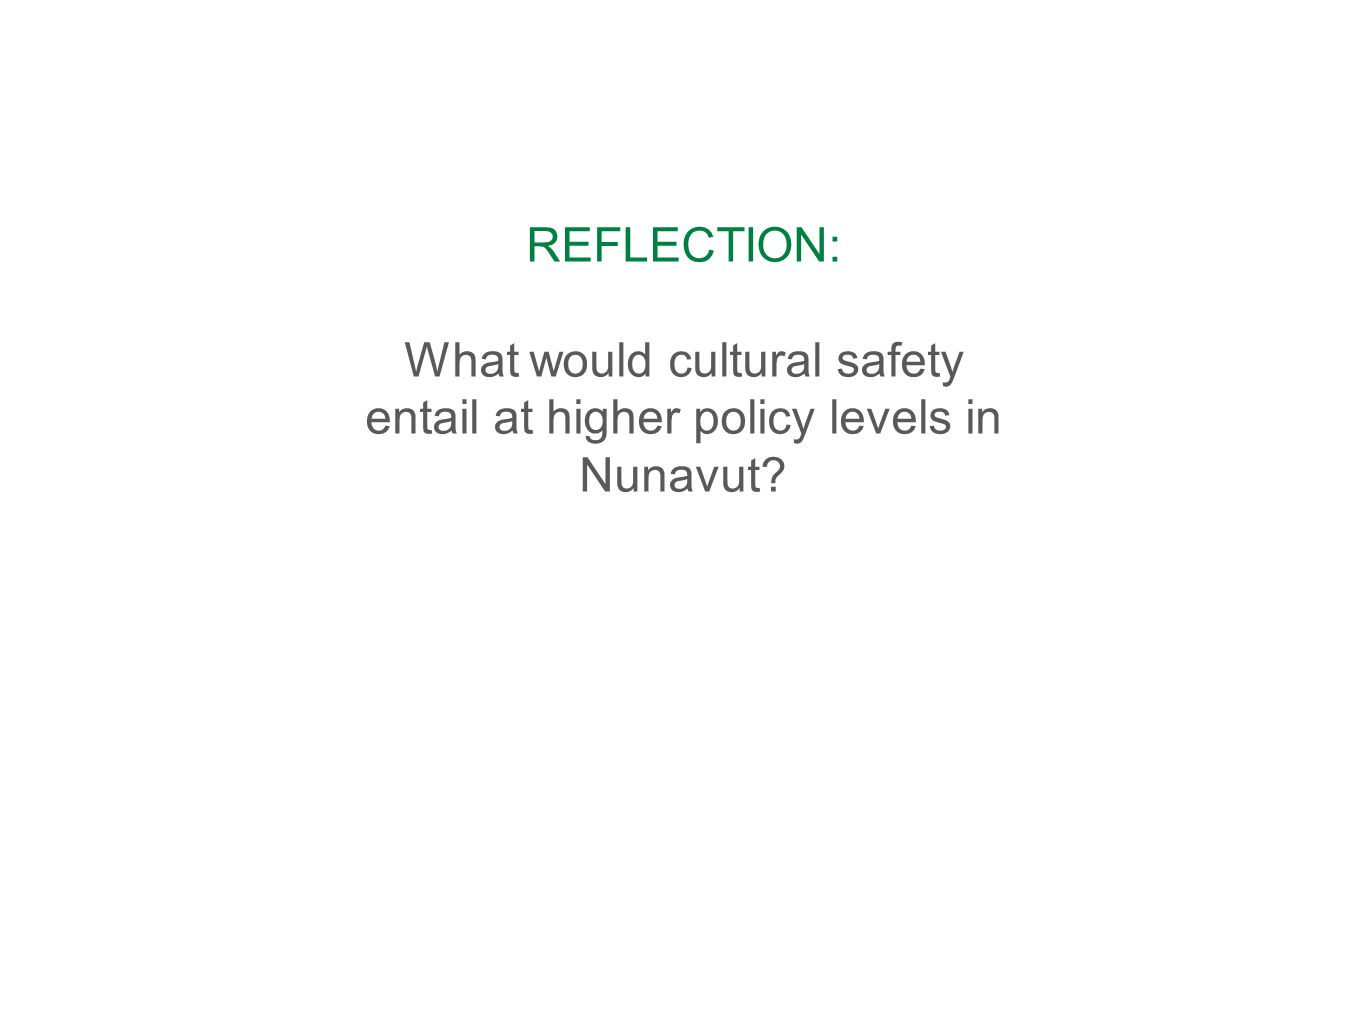 REFLECTION: What would cultural safety entail at higher policy levels in Nunavut?